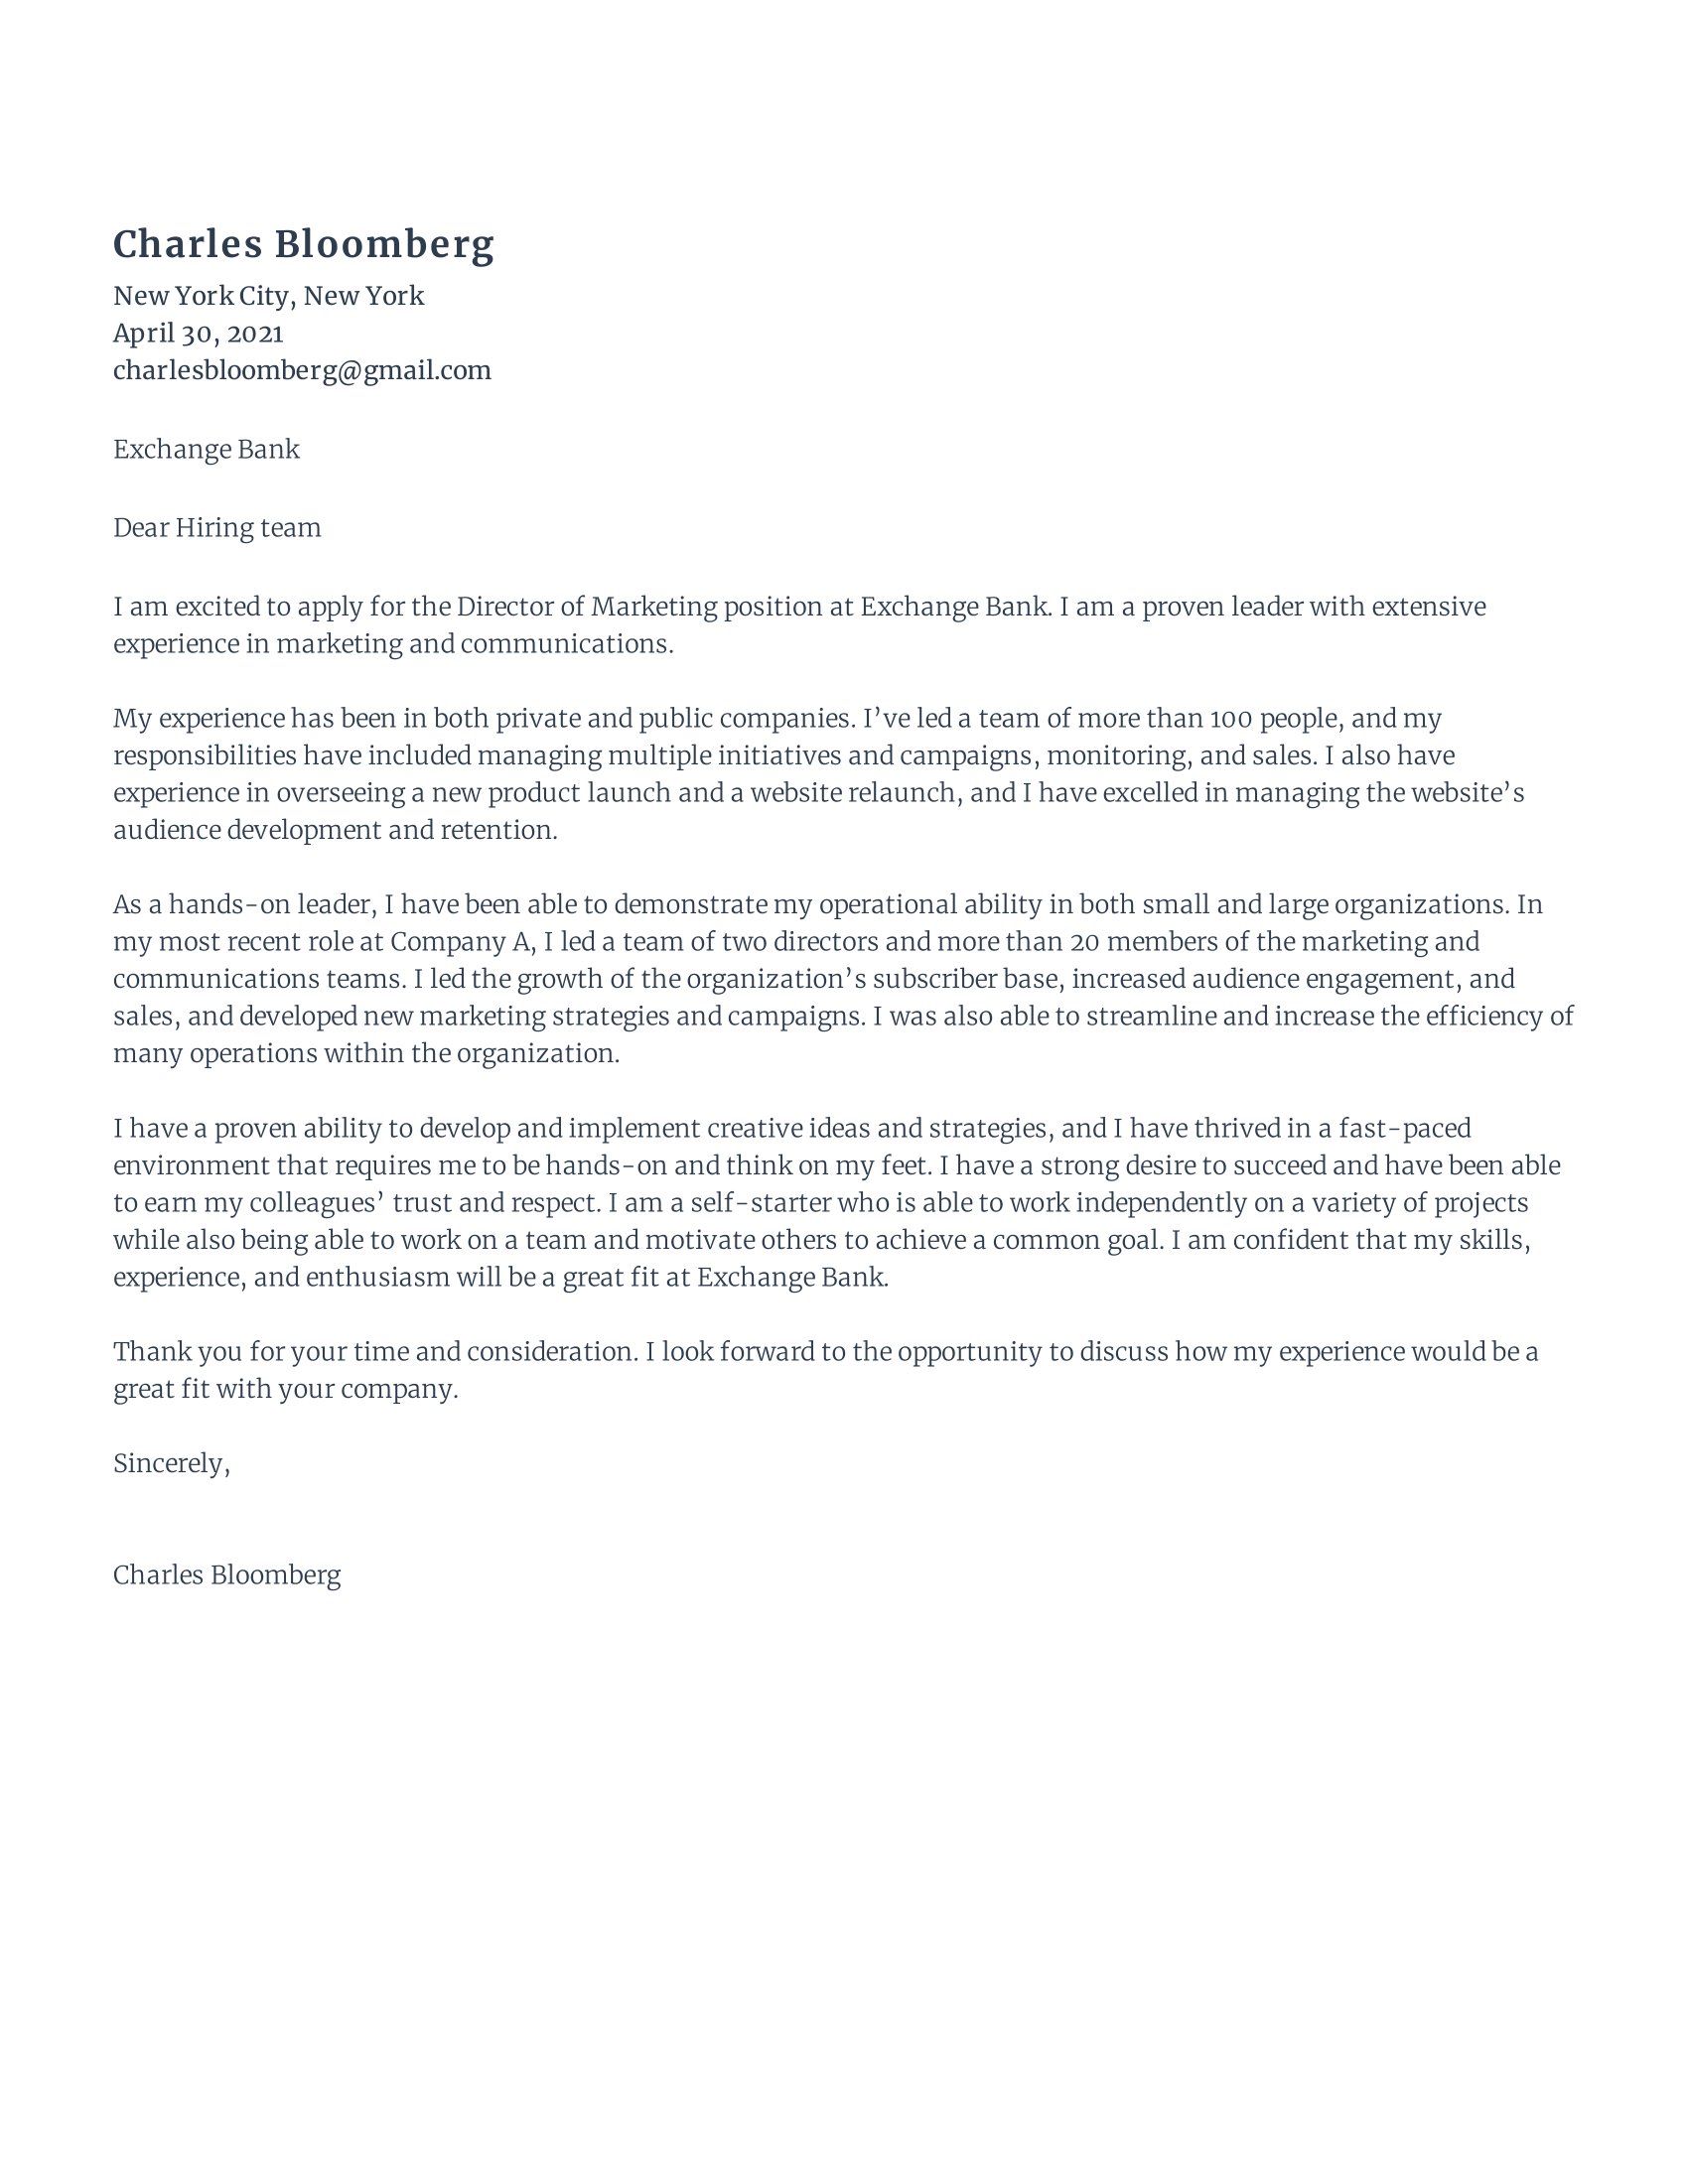 Director of Marketing Cover Letter